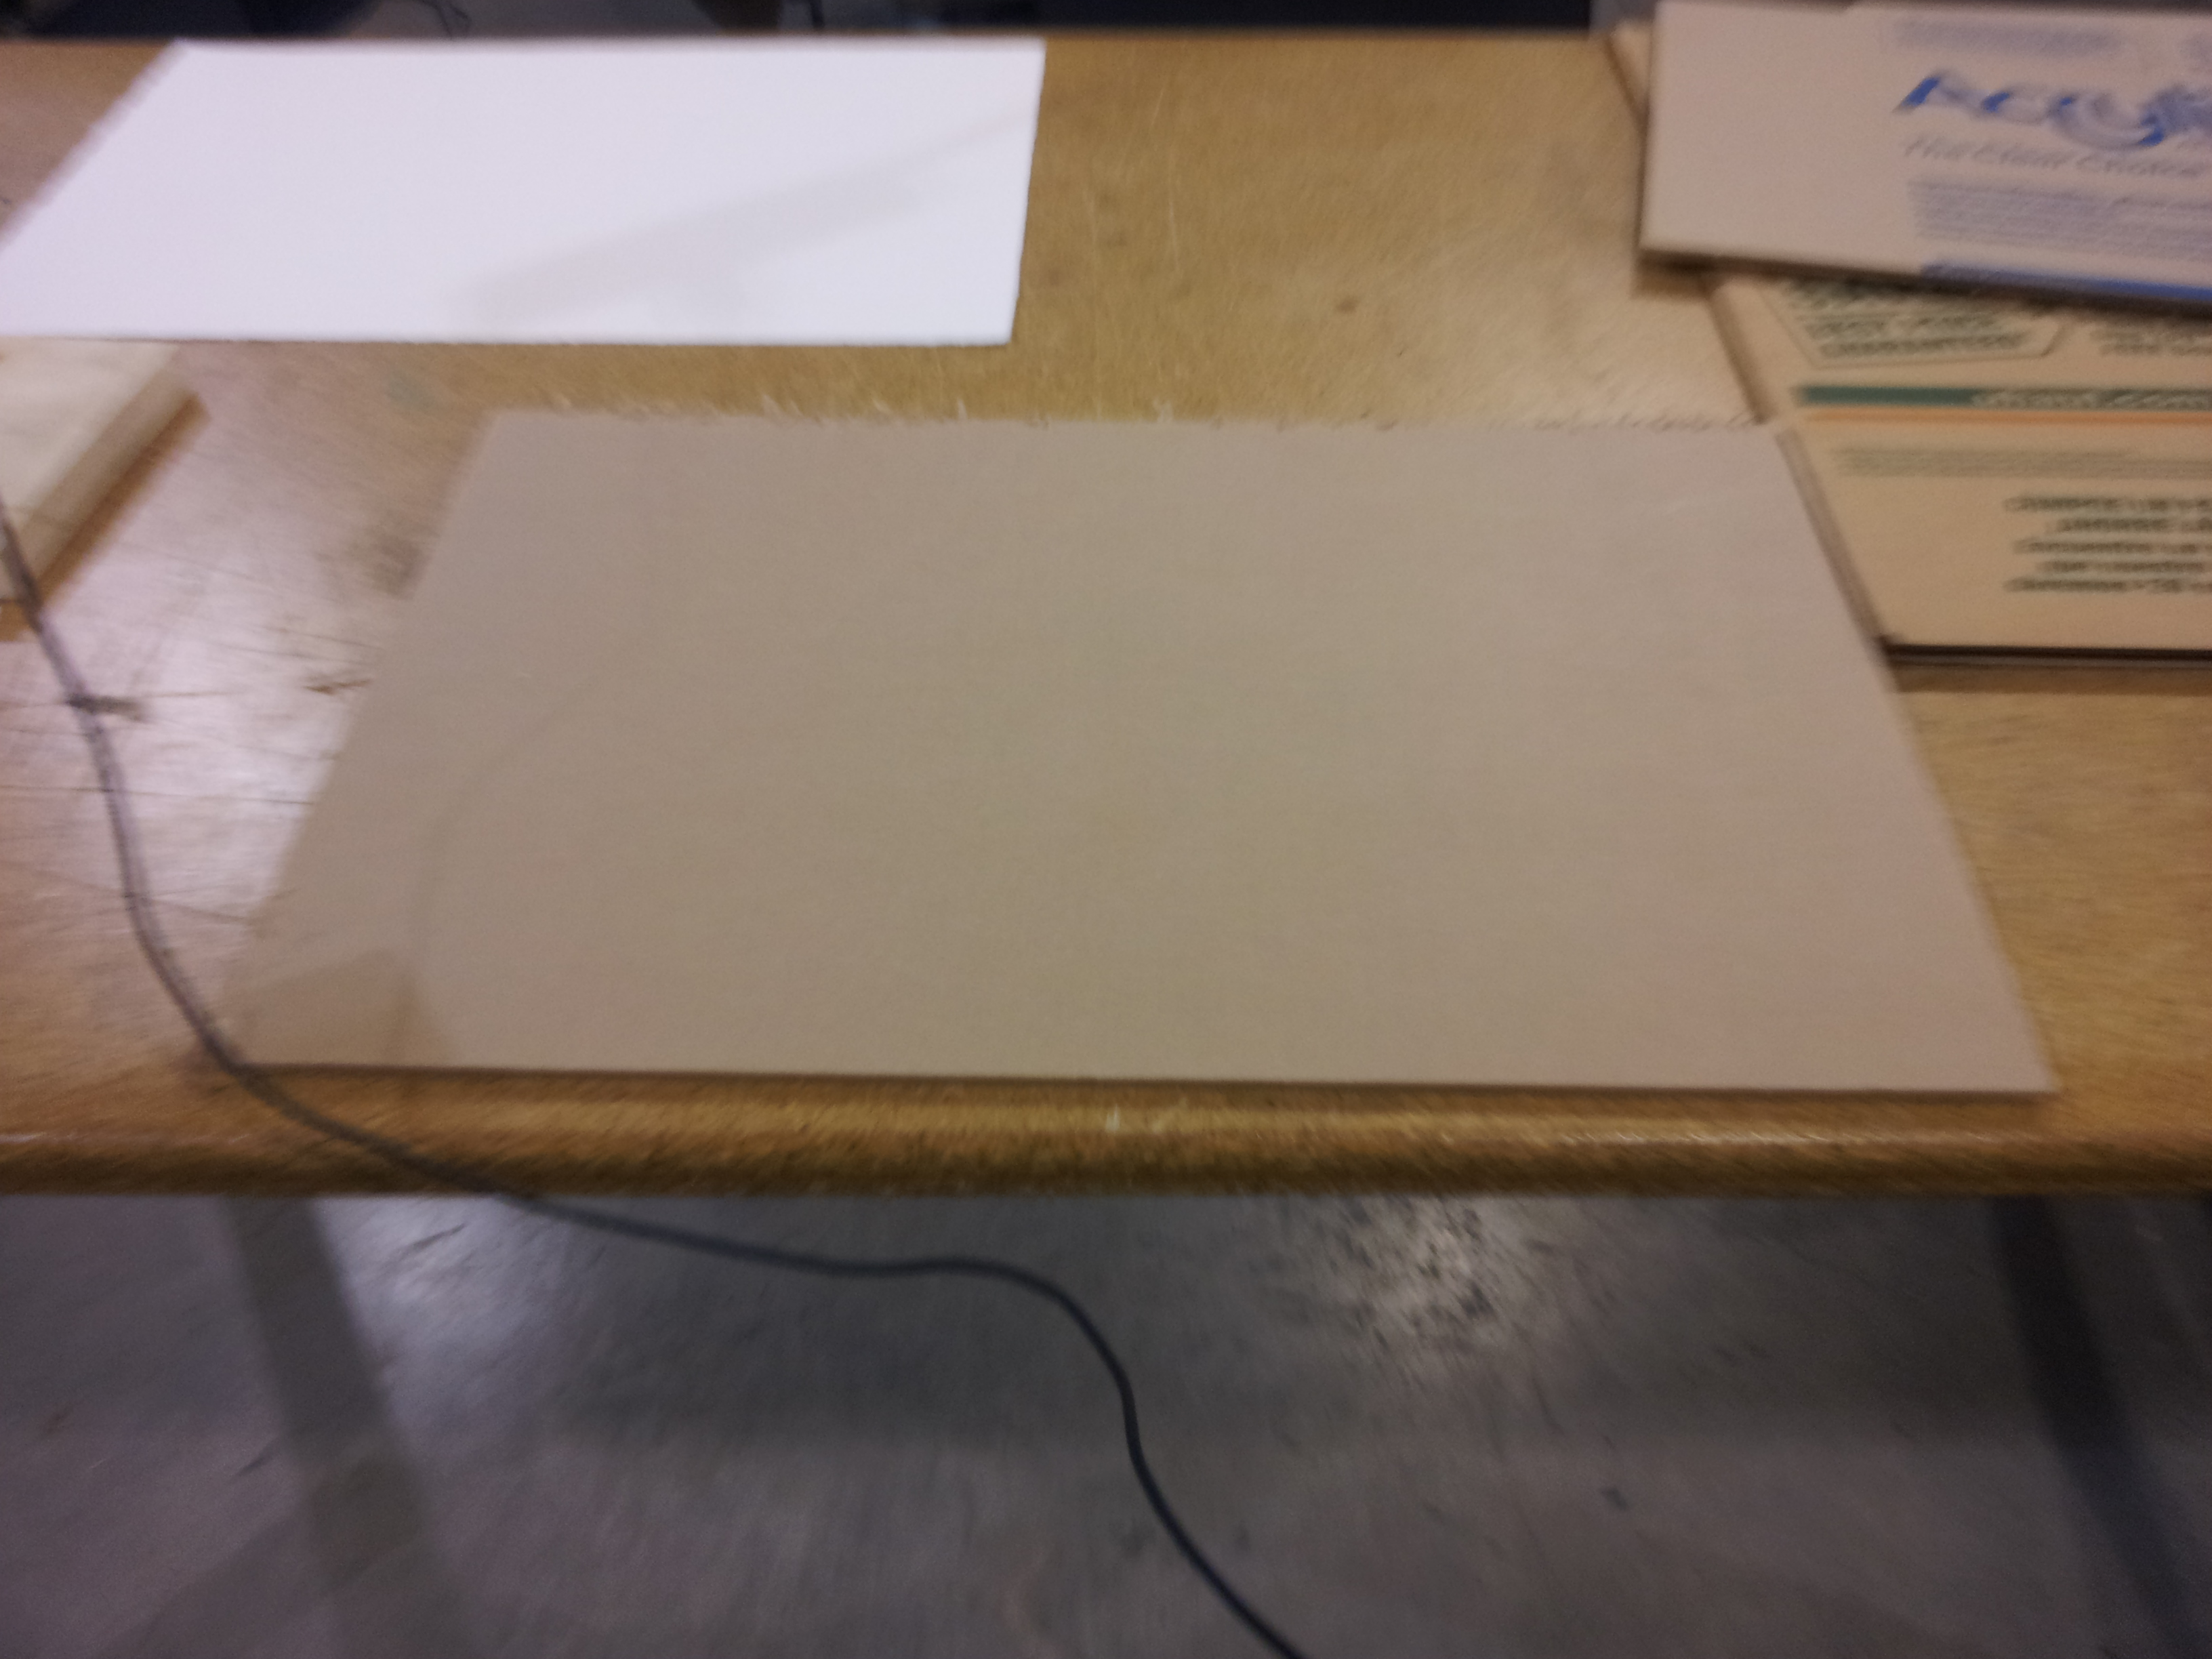 Picture of Using the Cardboard to Make a Test Cut, and Cutting the Acrylic